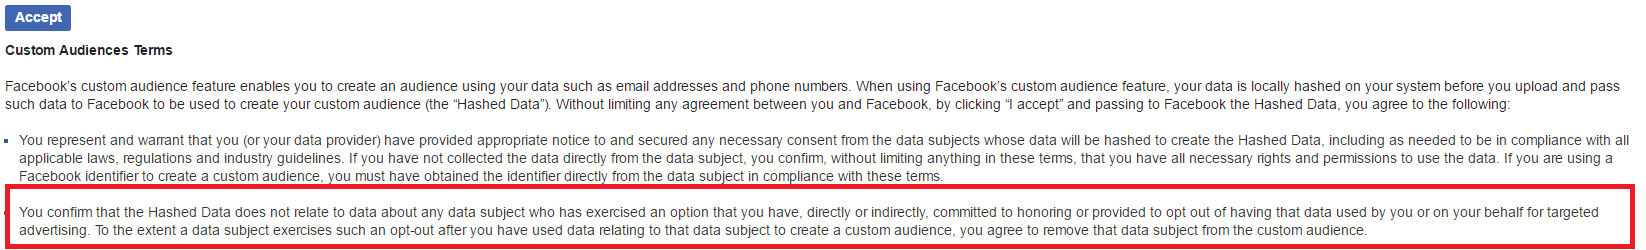 fb ads policy.png